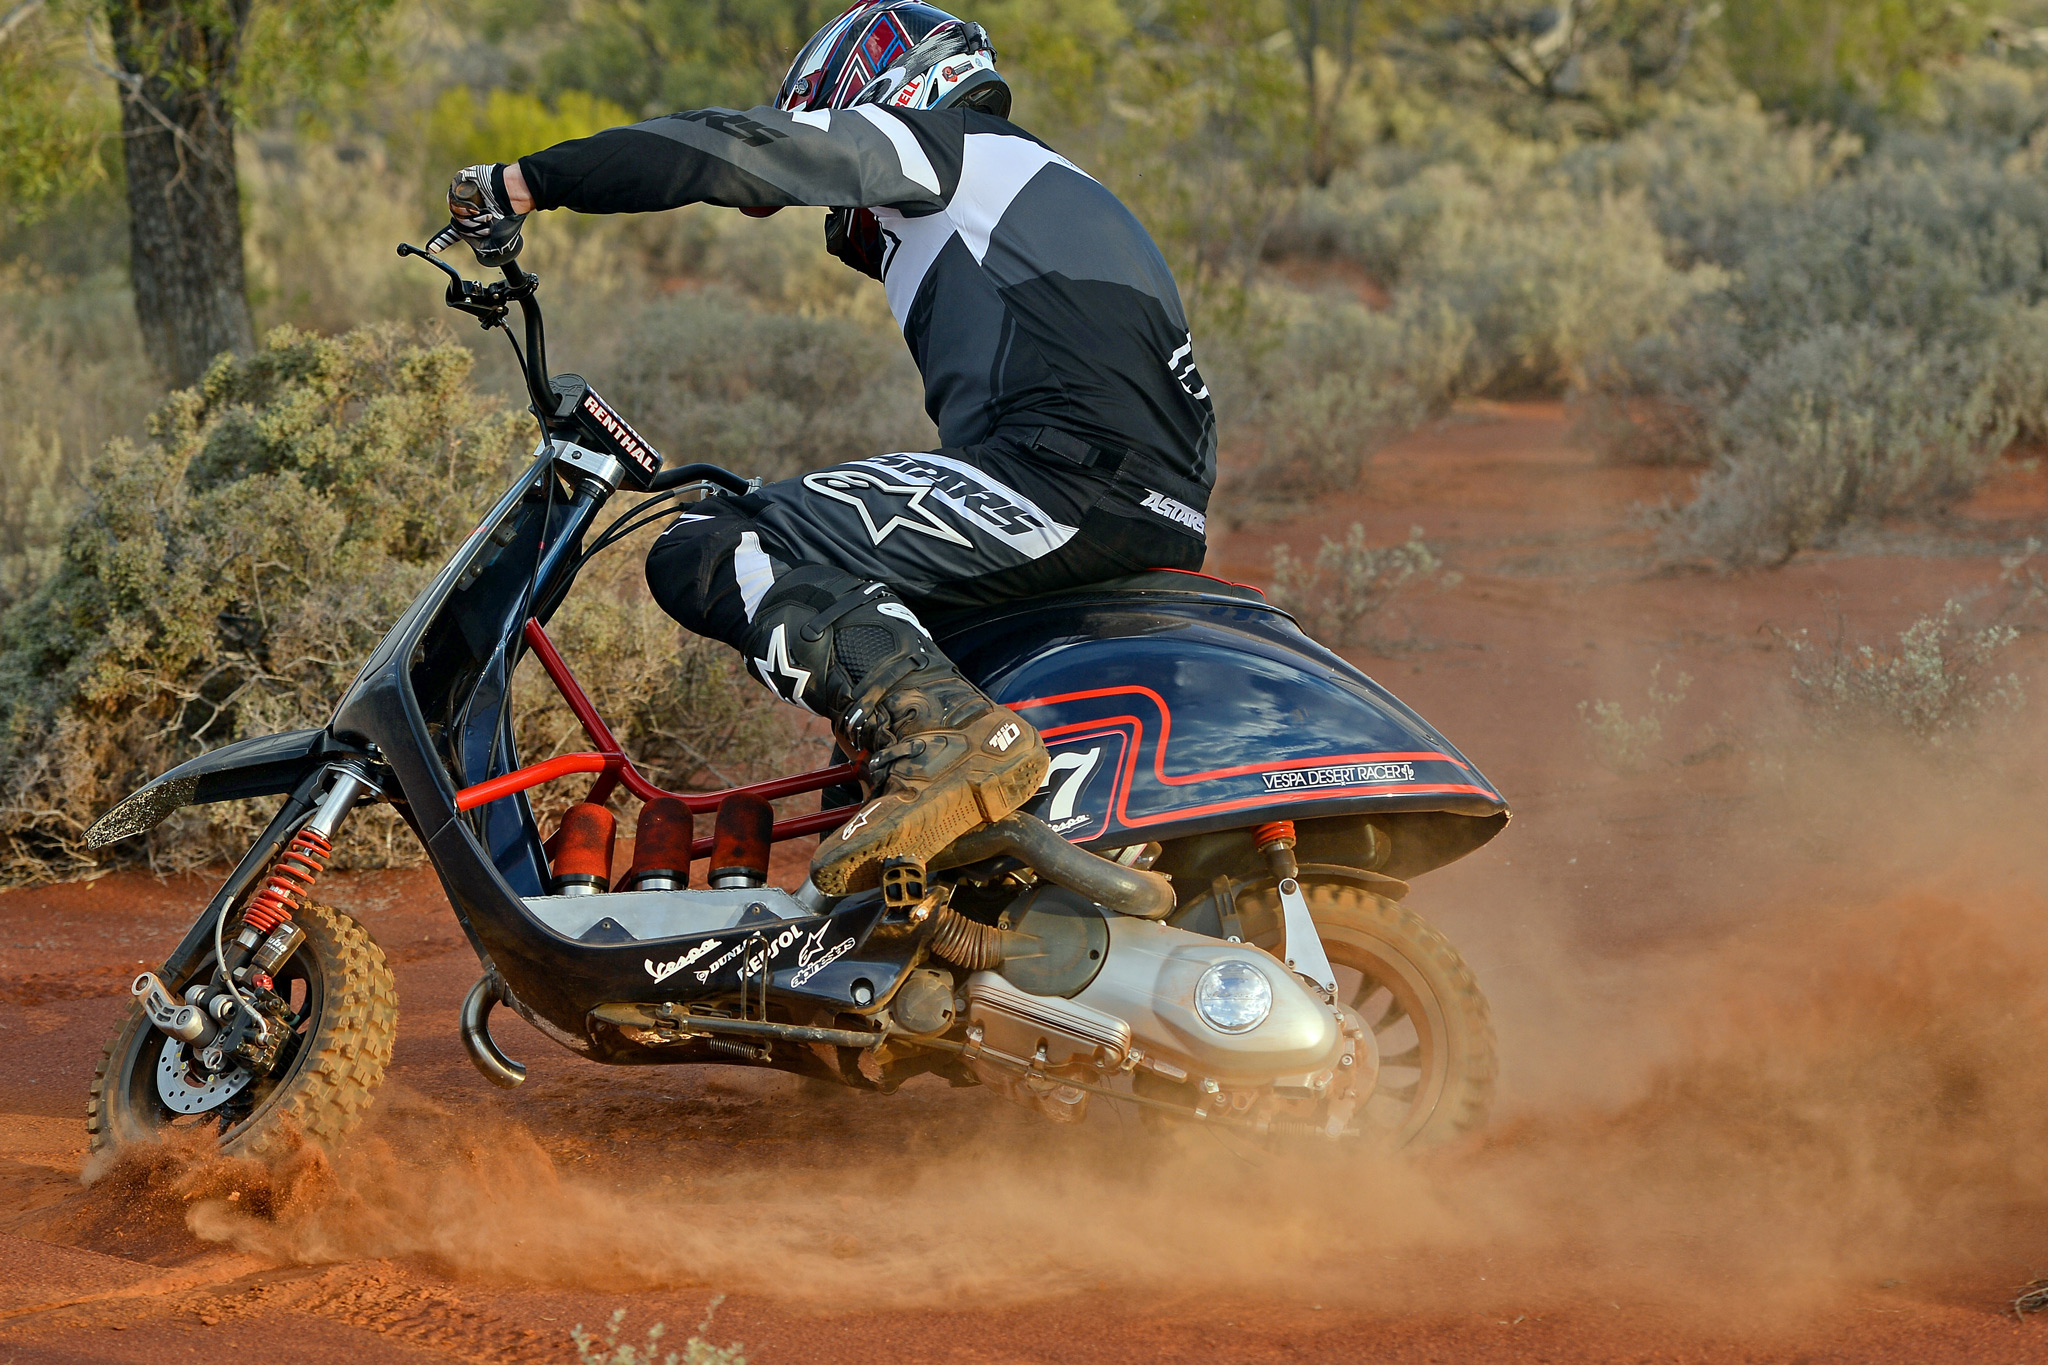 The Vespa Desert Racer